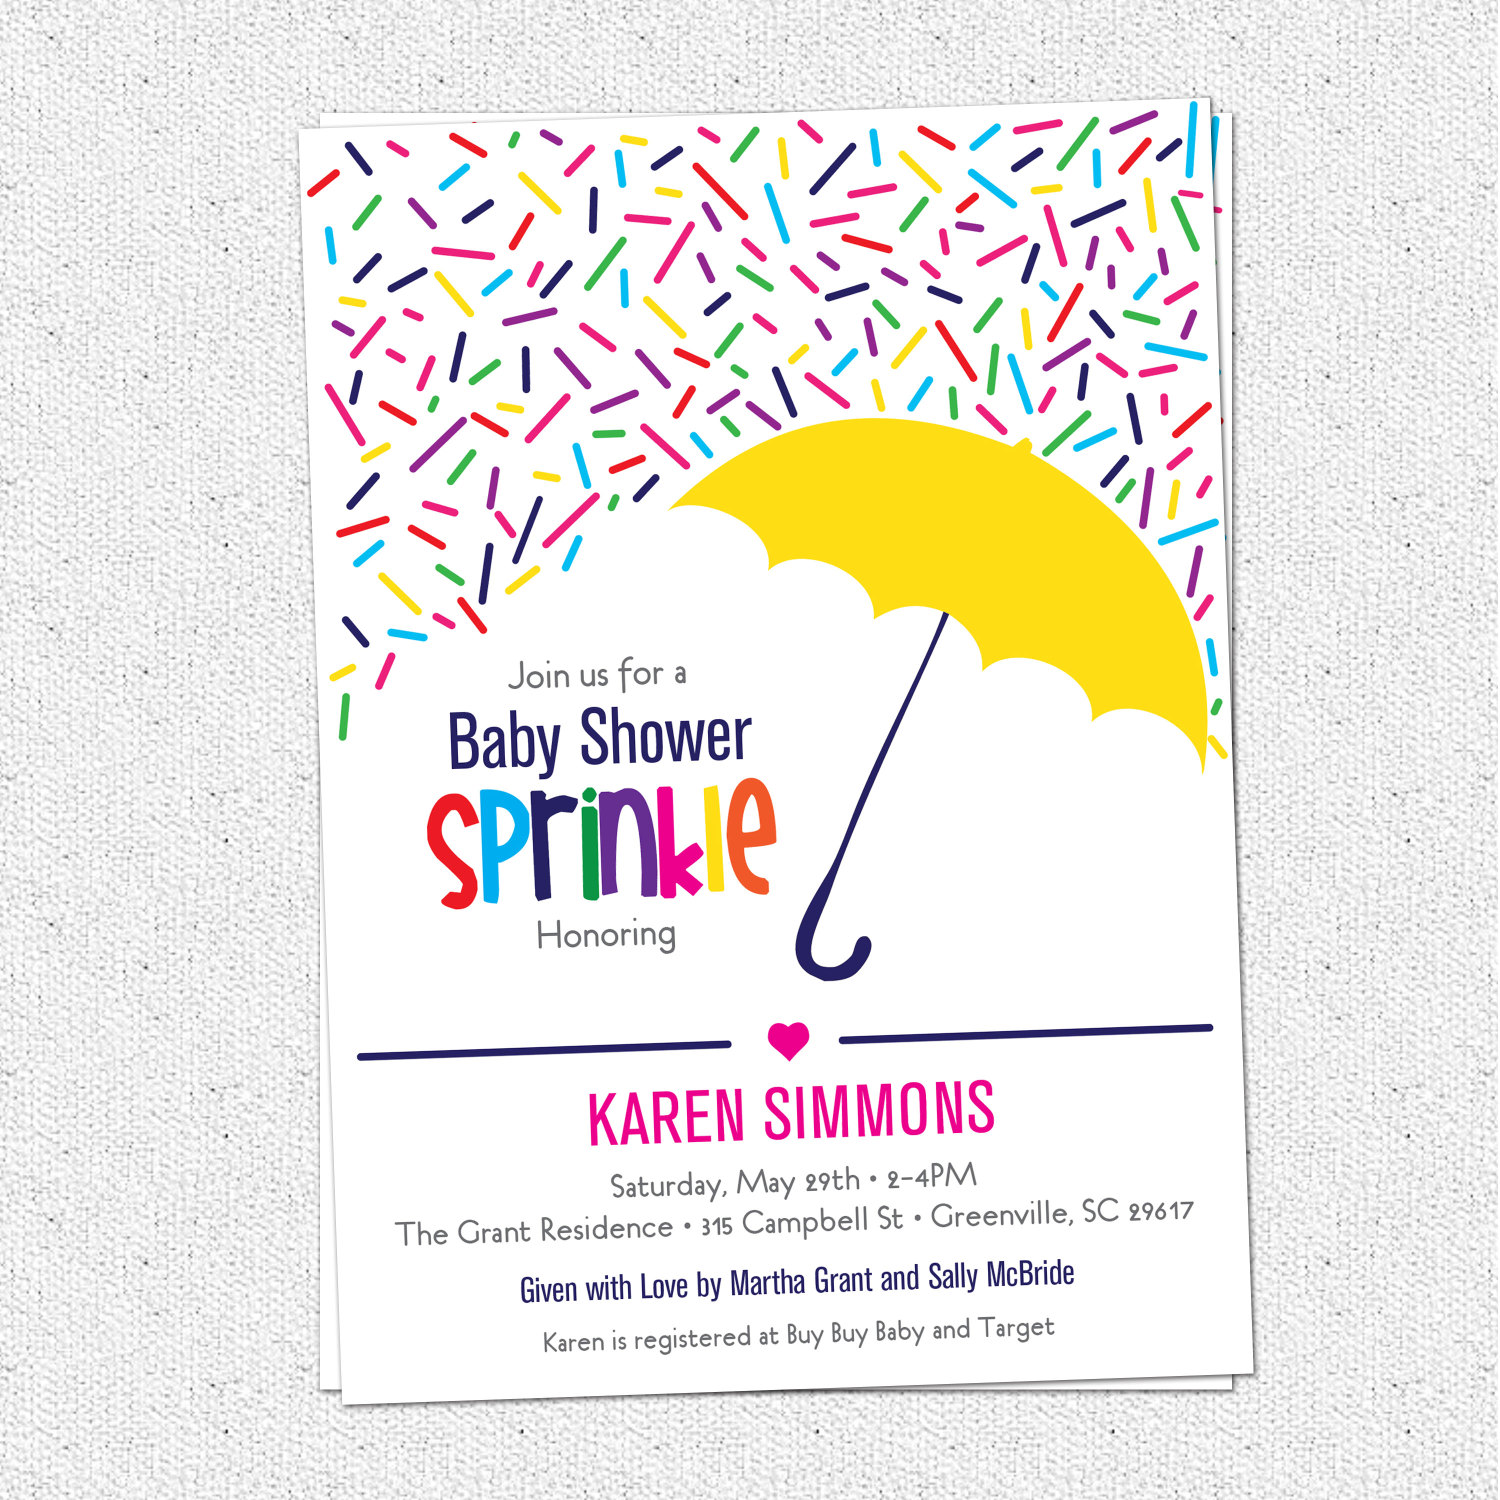 Sprinkle baby shower invitations raining rainbow sprinkles and sprinkle baby shower invitations raining rainbow sprinkles and umbrella colorful set of 10 filmwisefo